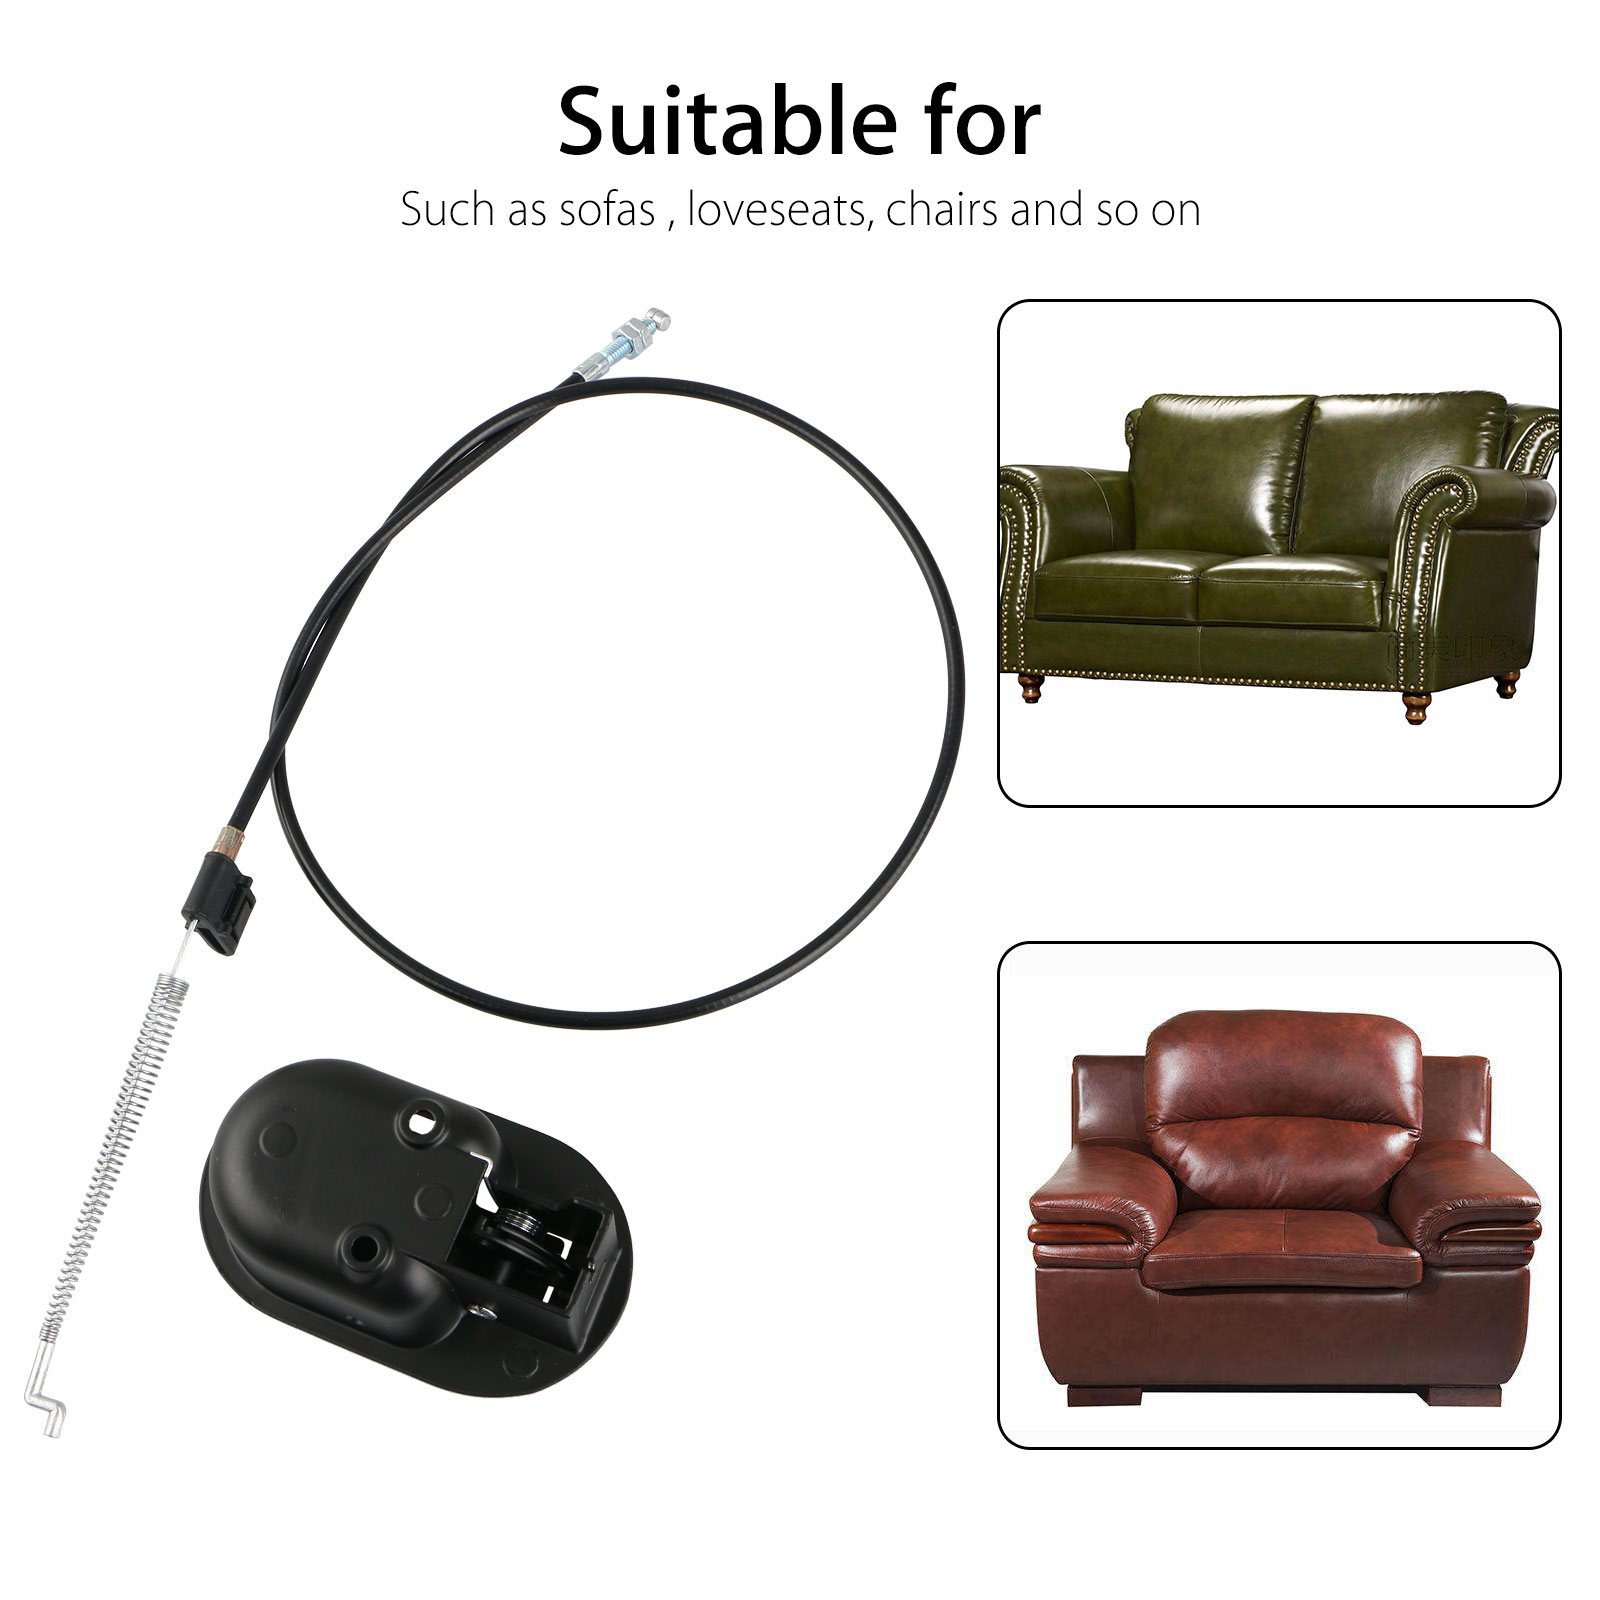 Picture of: Universal Plastic Sofa Chair Recliner Release Pull Handle Replacement Parts With Cable Fits For Ashley And Most Major Recliner Brands Sofa Exposed Cable Length 4 75 Total Length 36 Walmart Com Walmart Com